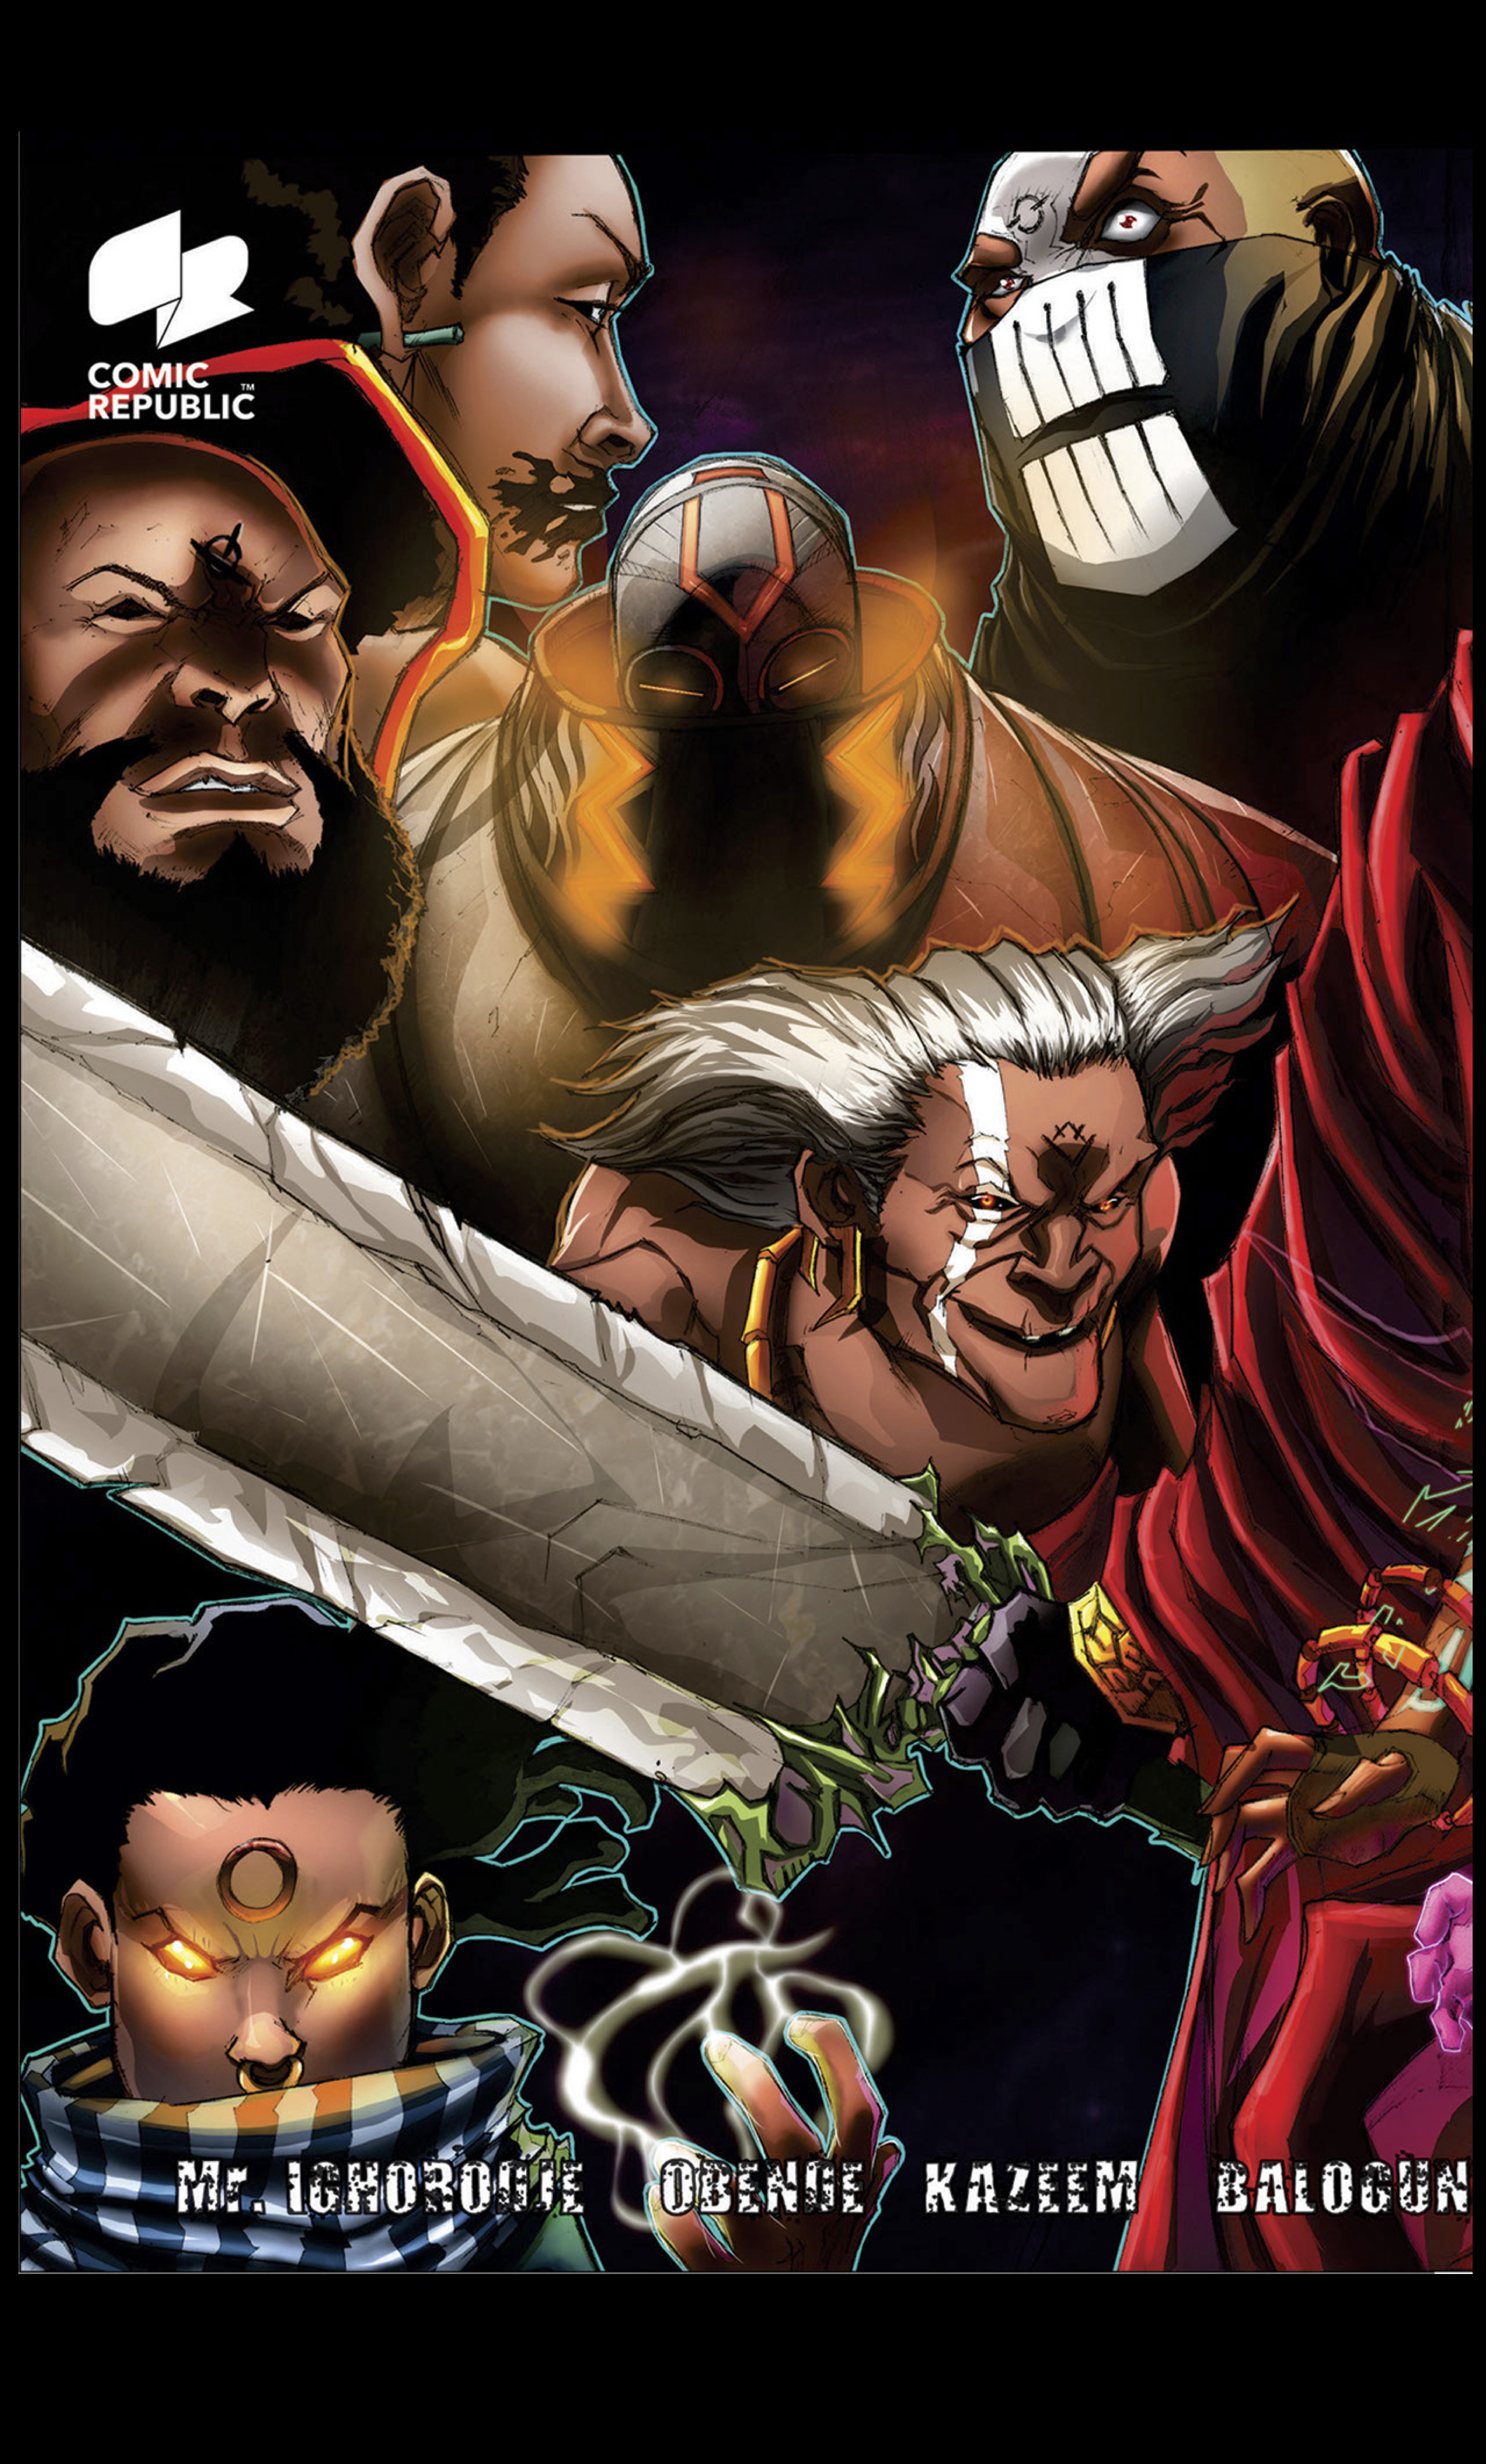 Cover of Avonome published by Comic Republic